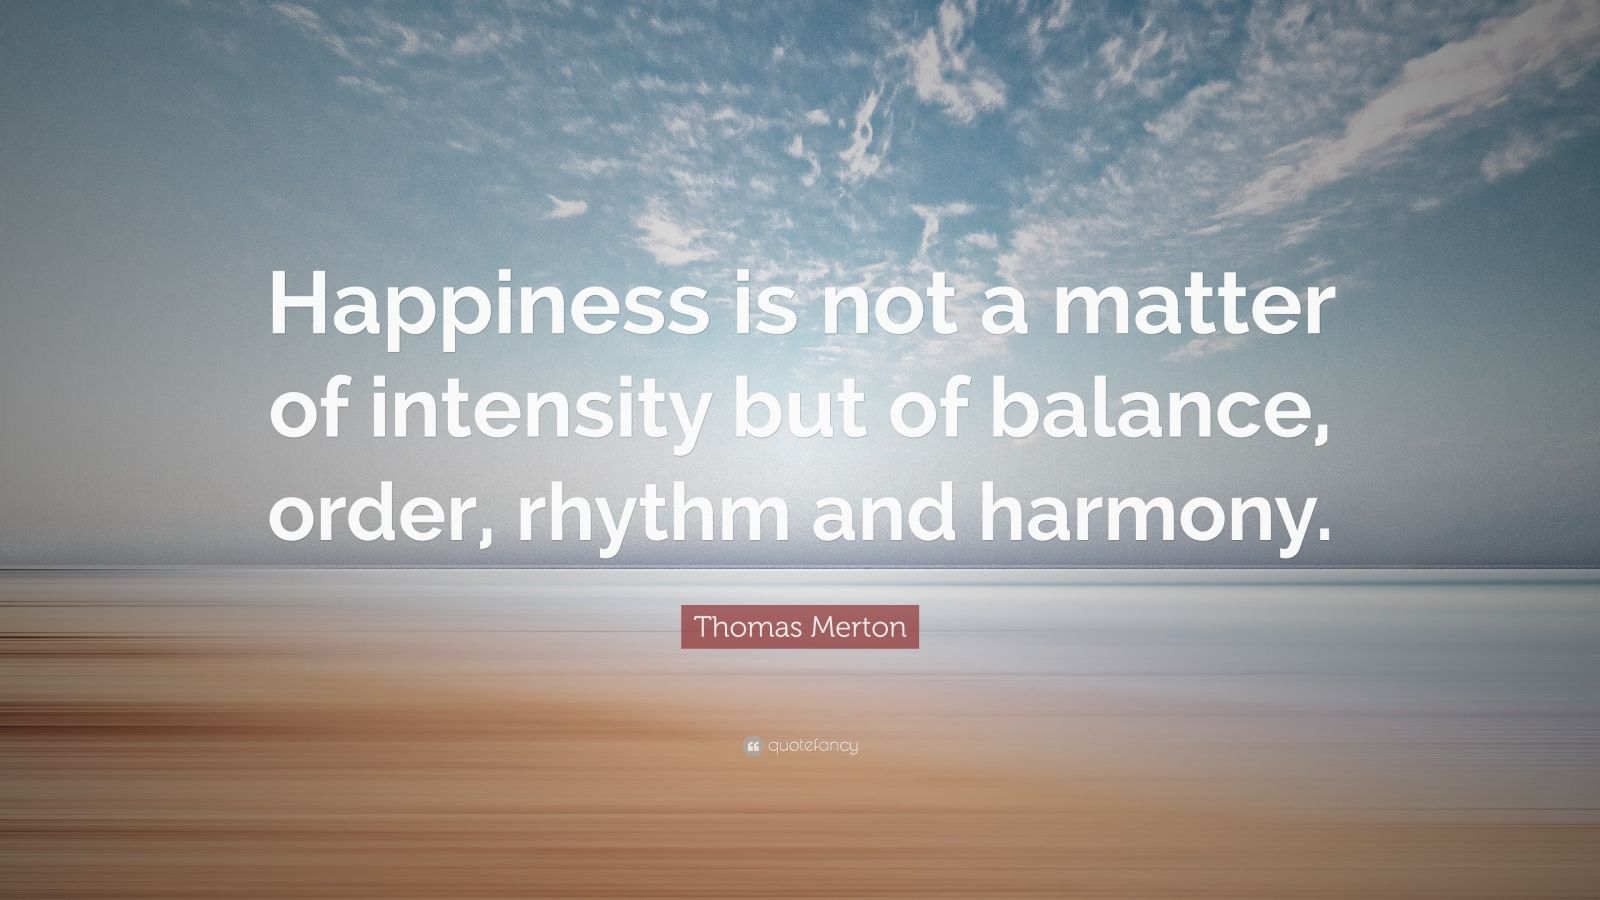 """Thomas Merton Quote: """"Happiness is not a matter of intensity but of balance, order, rhythm and harmony."""""""